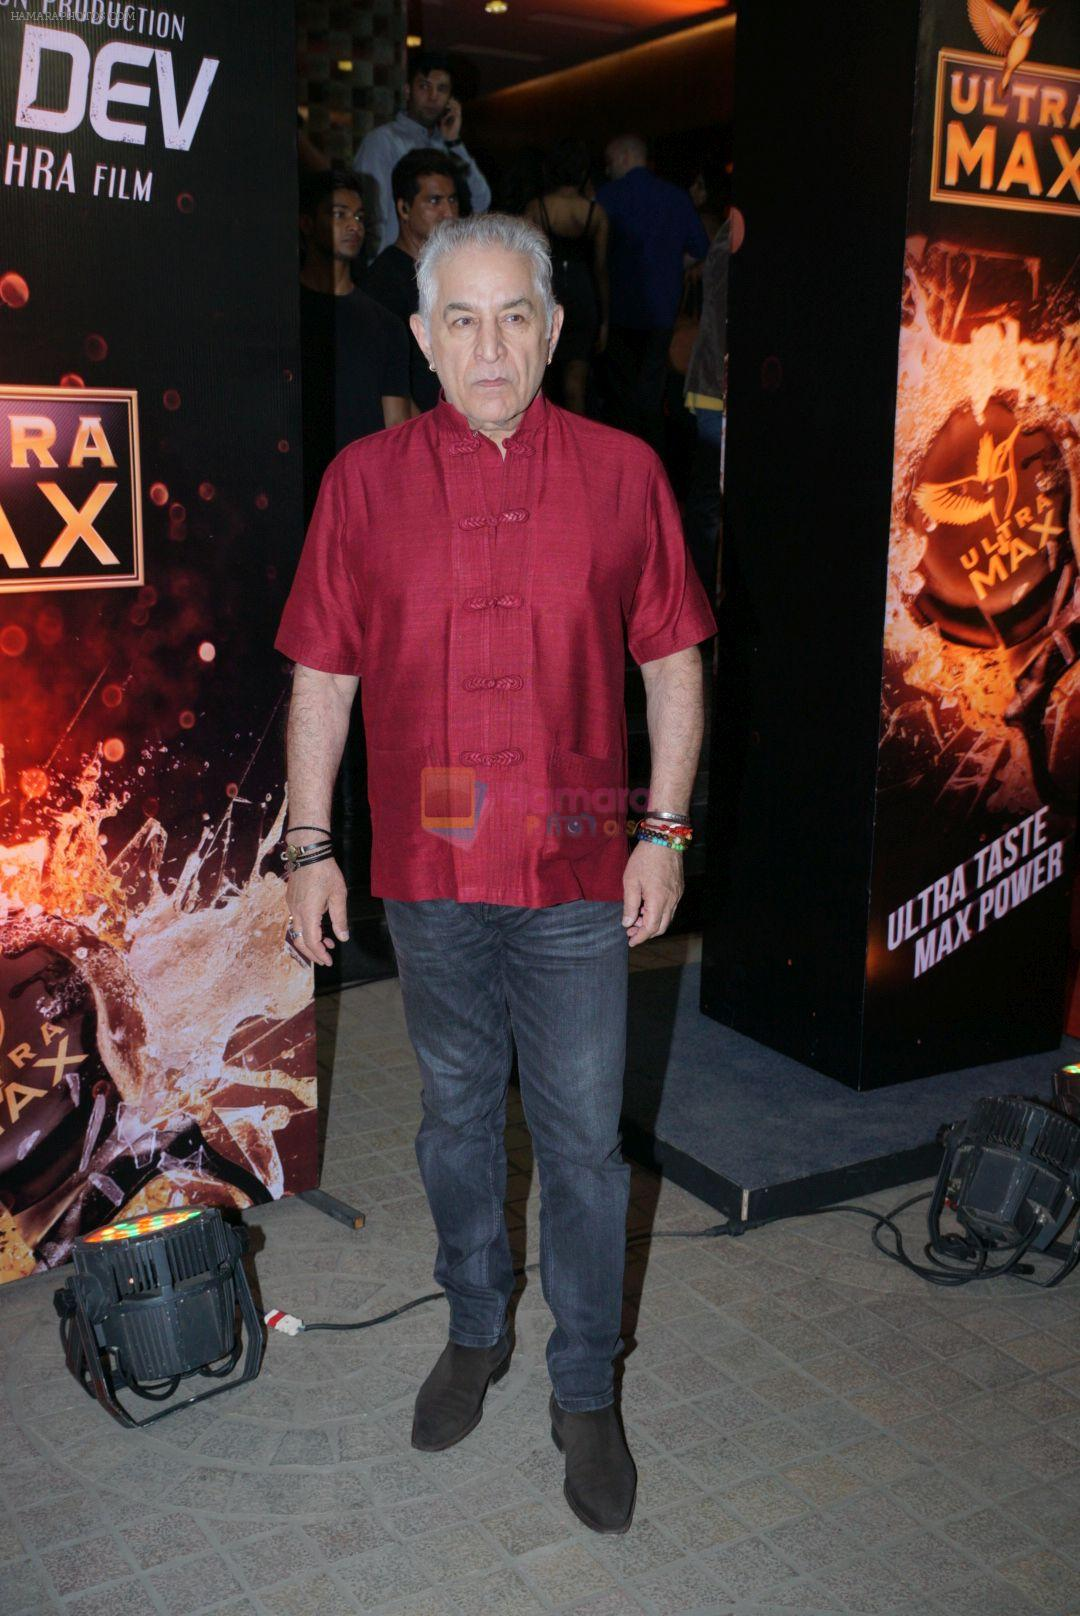 Dalip Tahil at the Premiere of film Daasdev at pvr ecx in andheri , mumbai on 25th April 2018